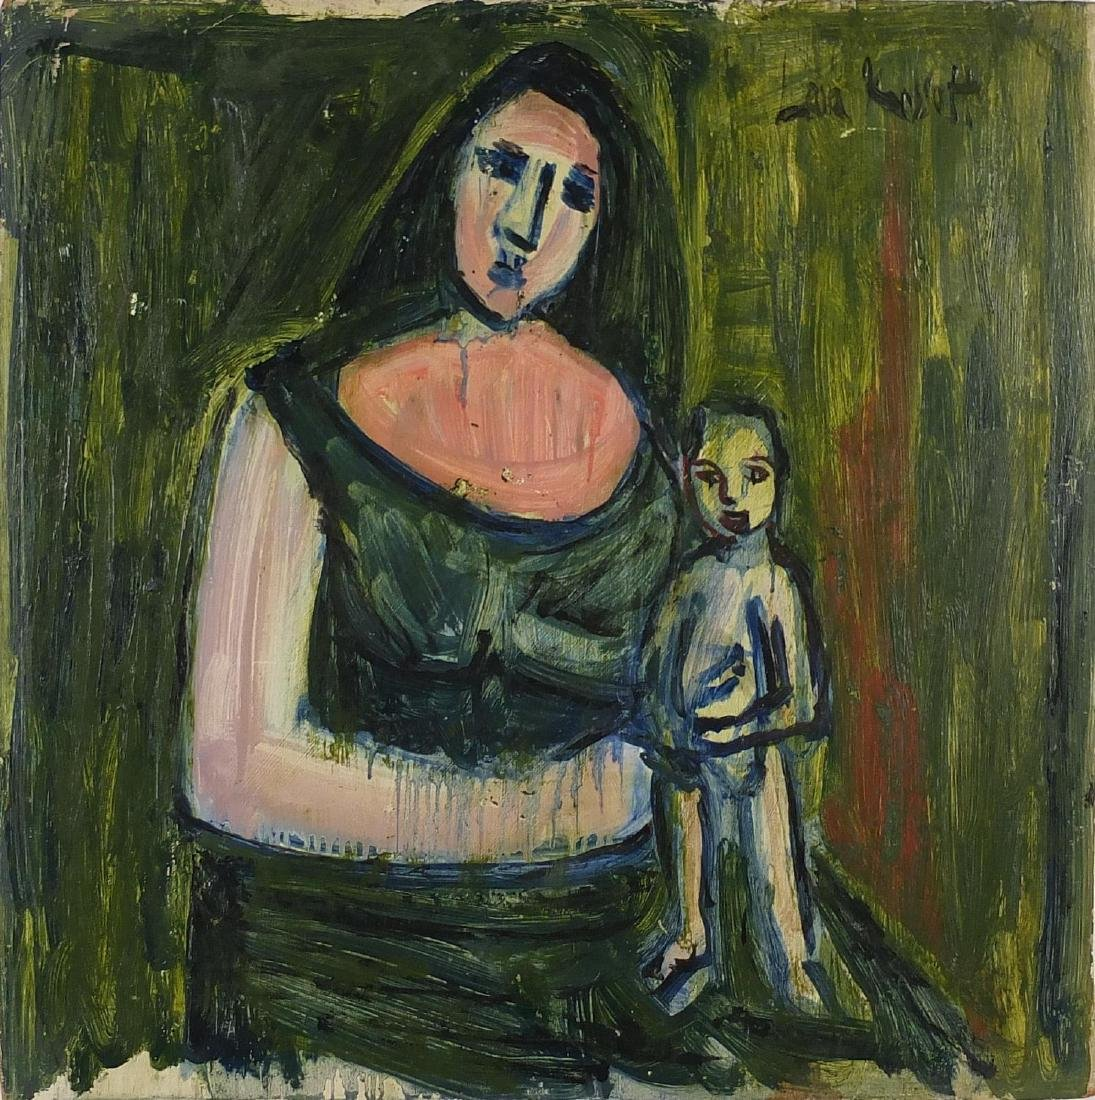 Abstract composition, mother and child, oil on wood panel, bearing an indistinct signature Lara